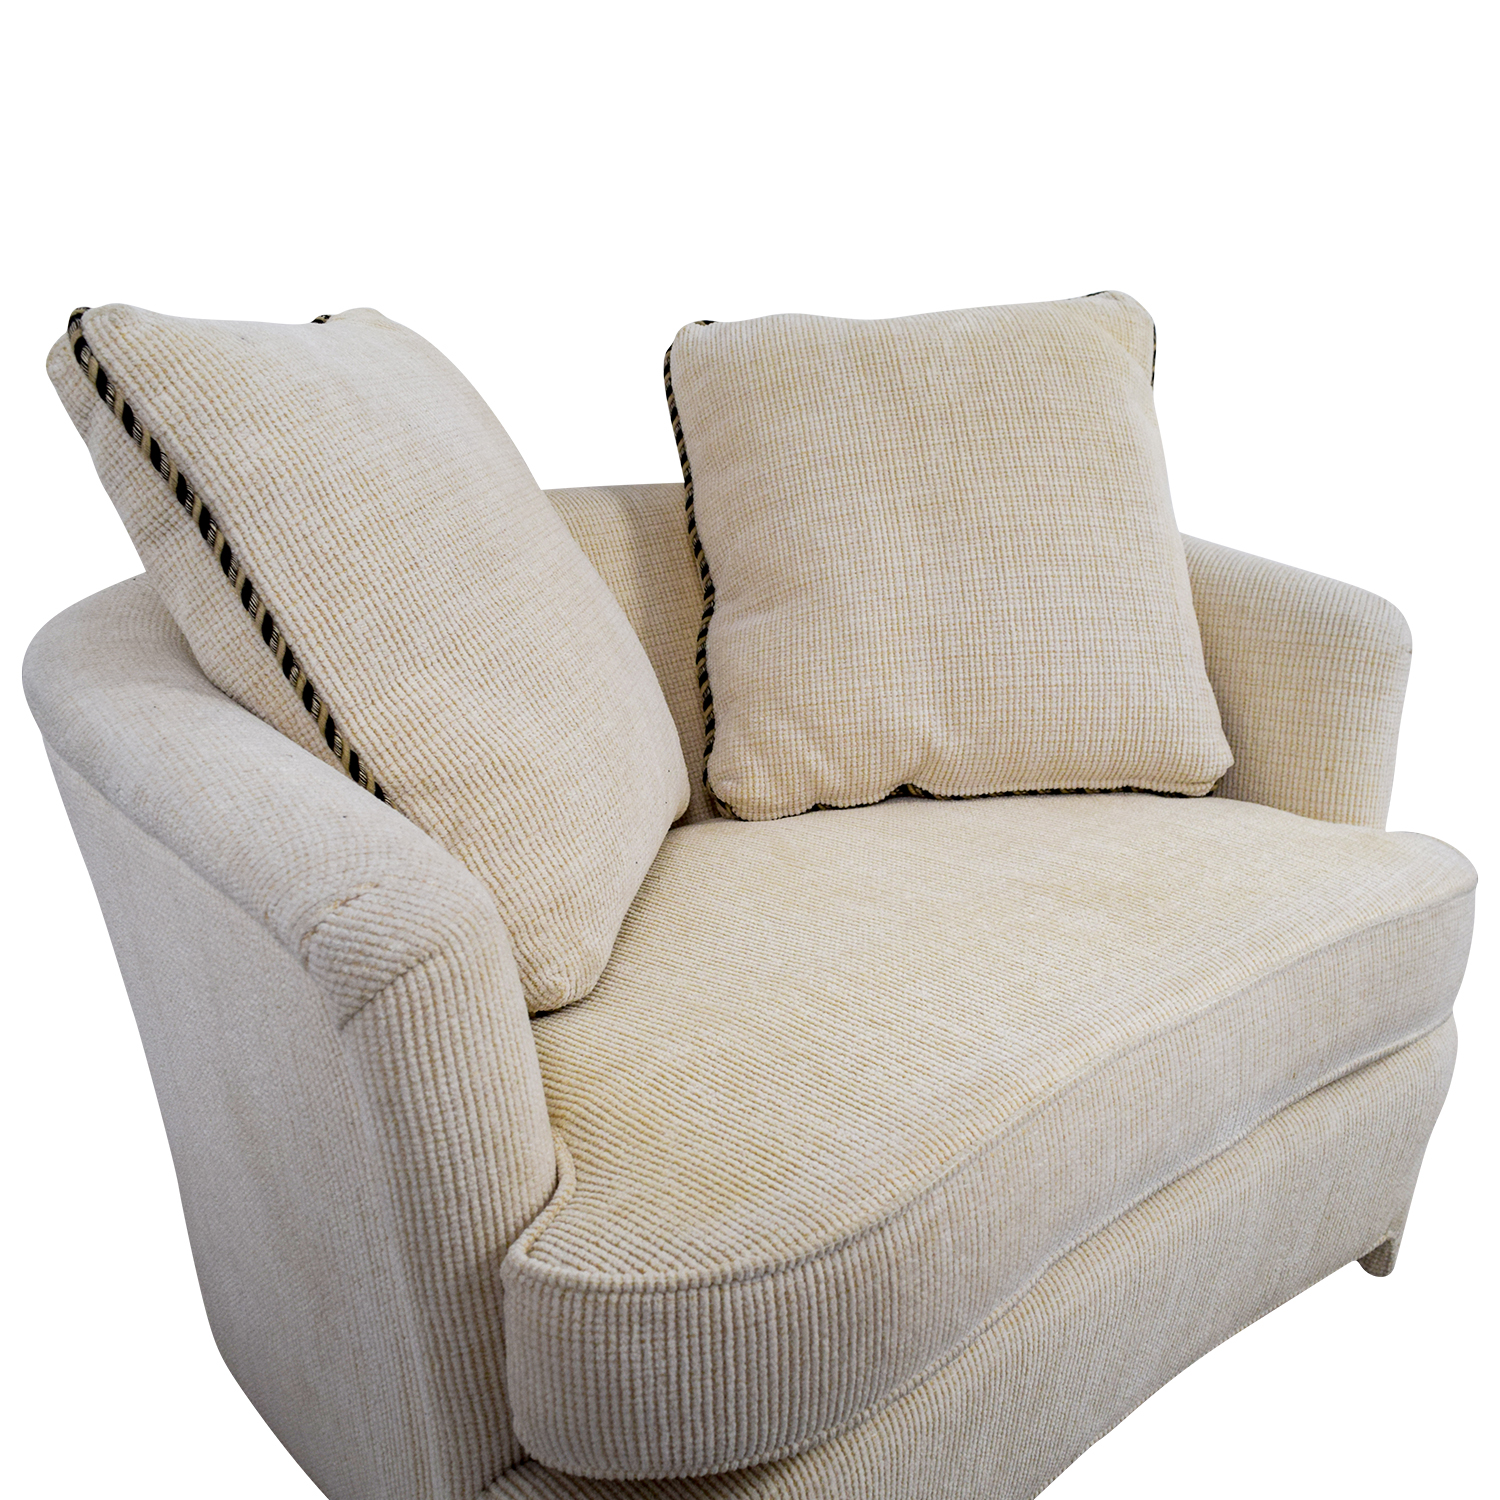 White Accent Furniture: Off White Accent Chair With Pillows / Chairs